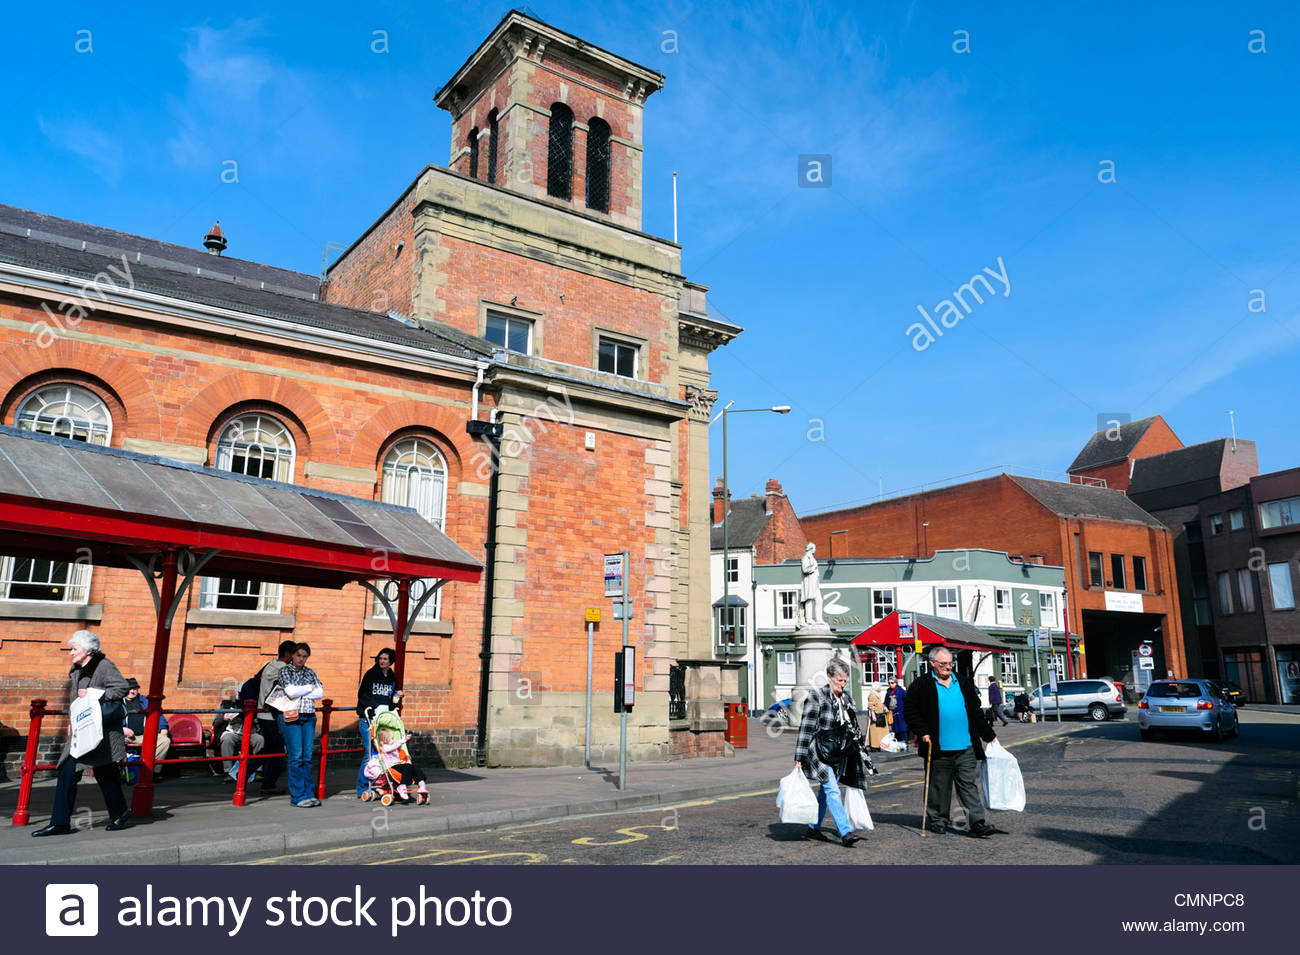 People shopping in Kidderminster town centre, UK. - Stock Image